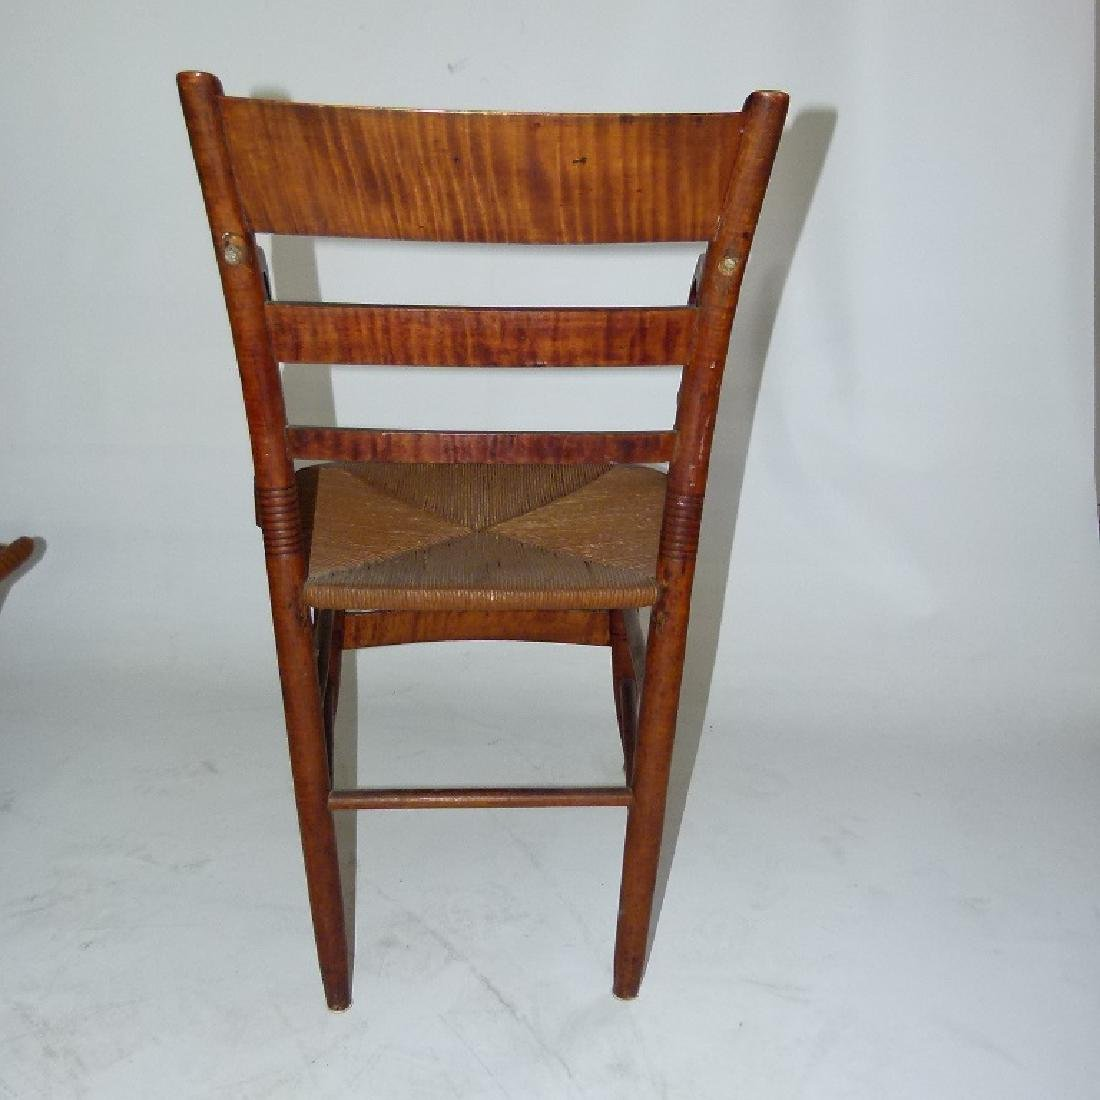 LOT (2) SHERATON TIGER MAPLE ARMCHAIRS C. 1820 - 9